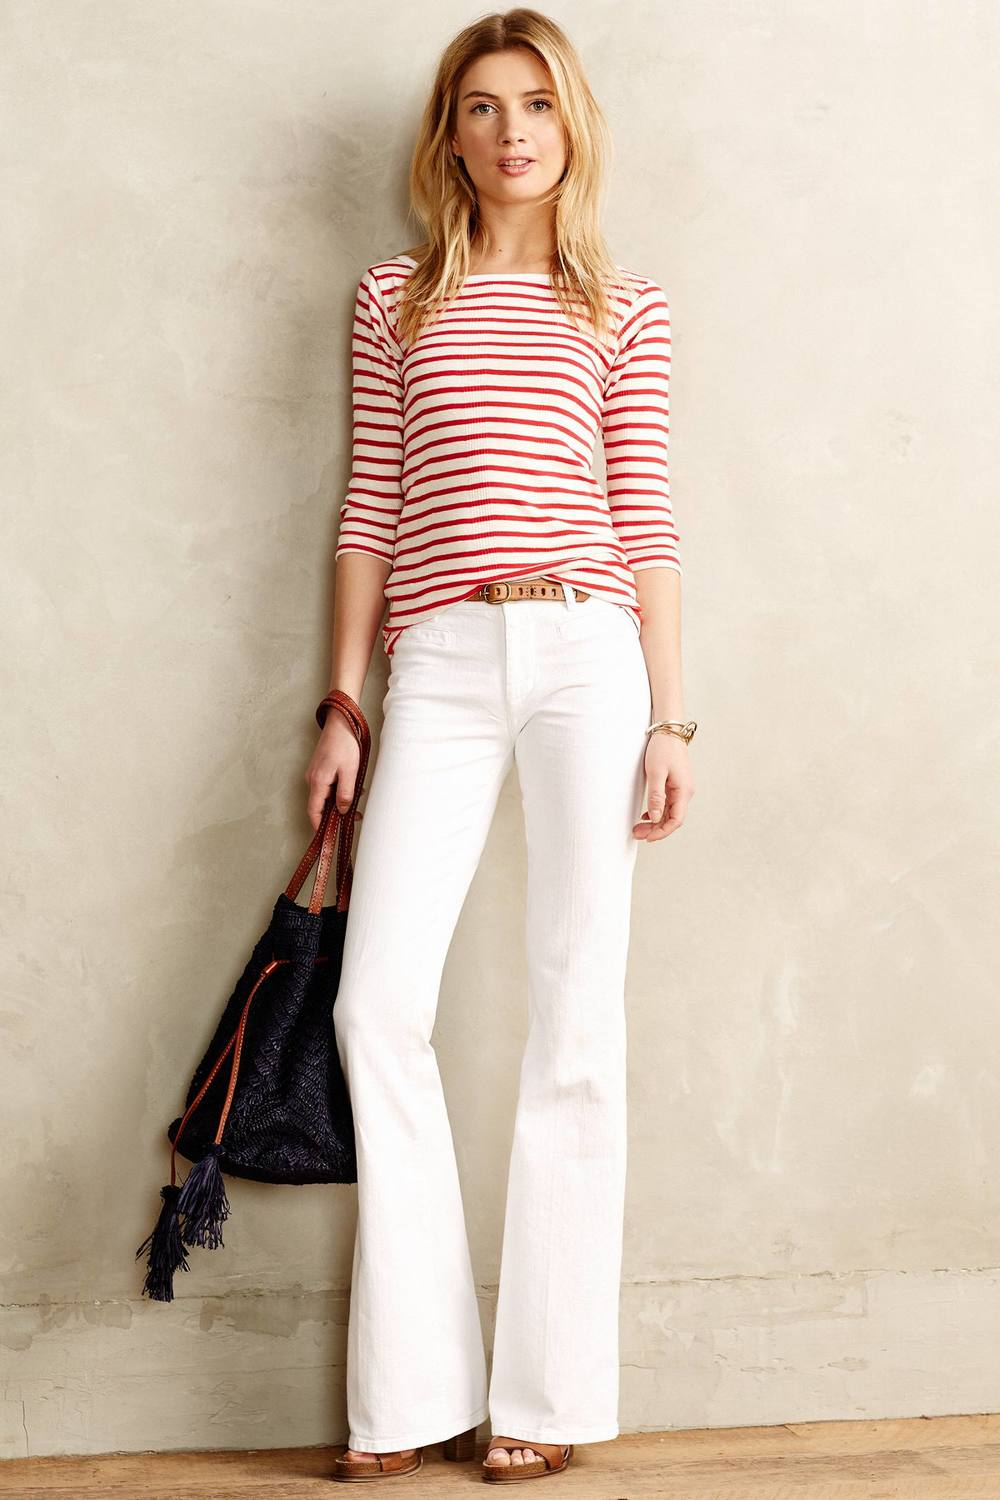 MiH Casablanca Petite Flared Jeans. Anthropologie. $99.